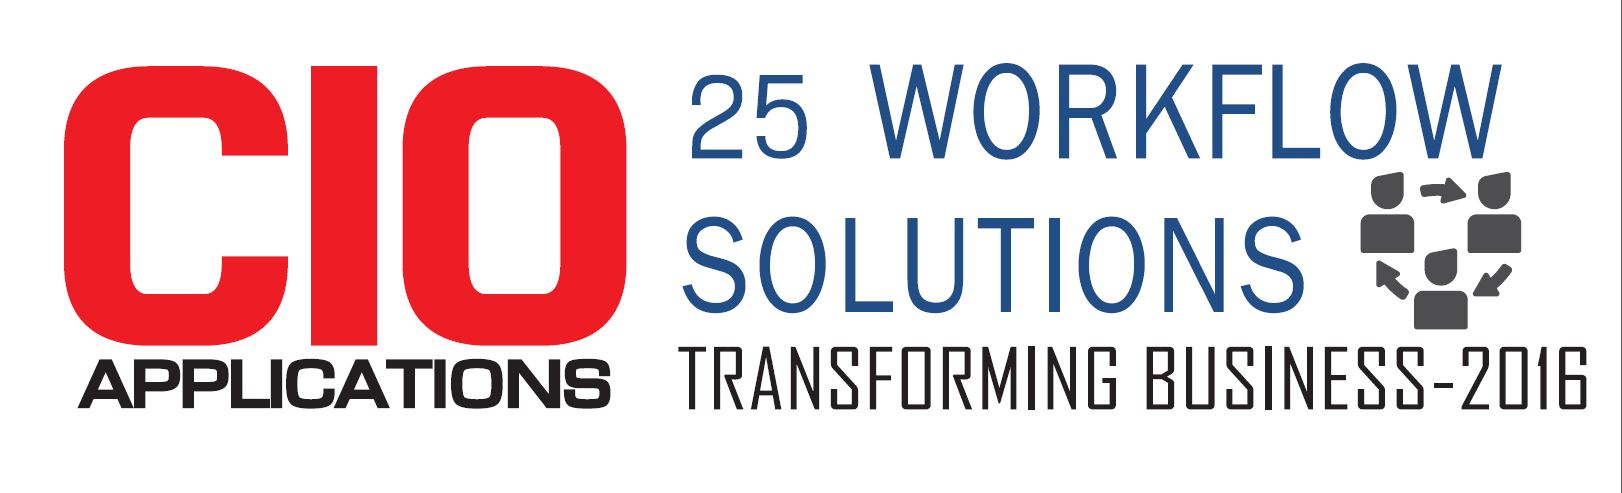 OpenEdge BPM: Top 25 Workfow Solutions